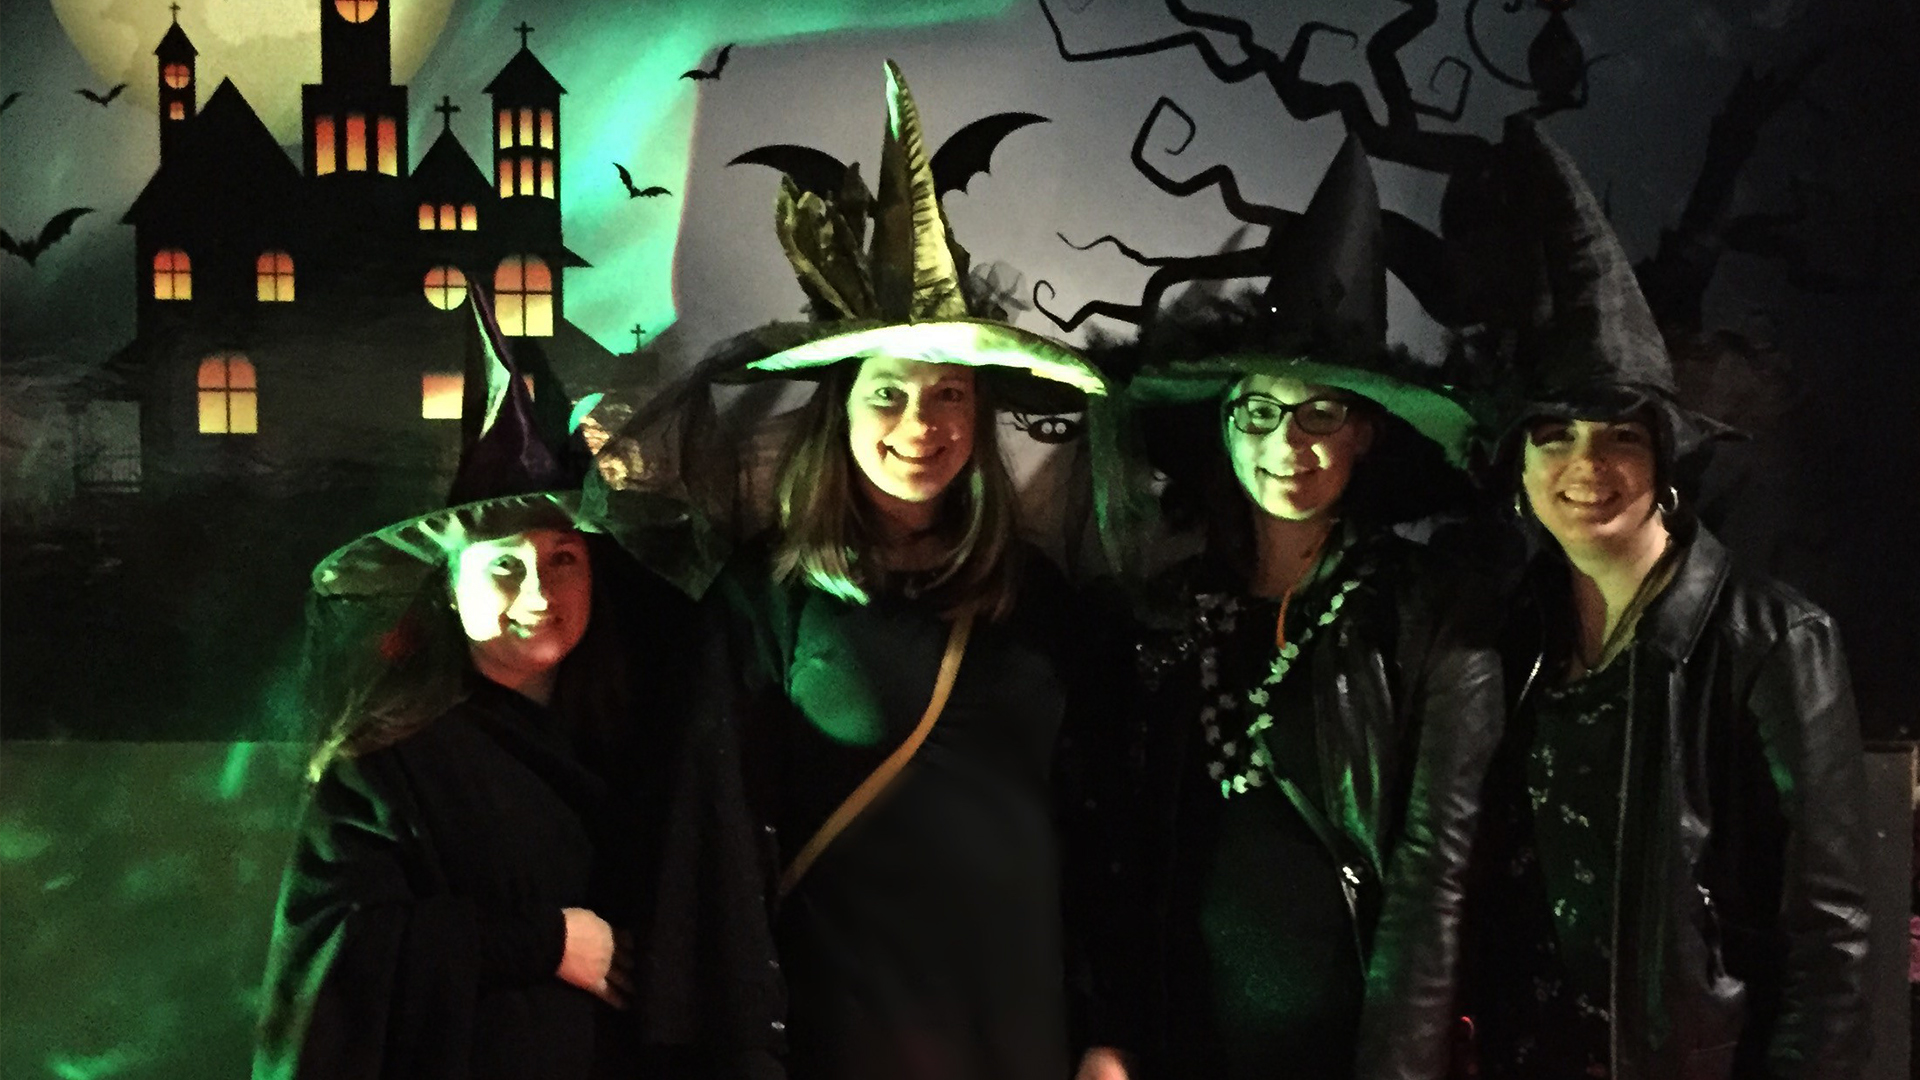 witches walk - October events you don't want to miss!